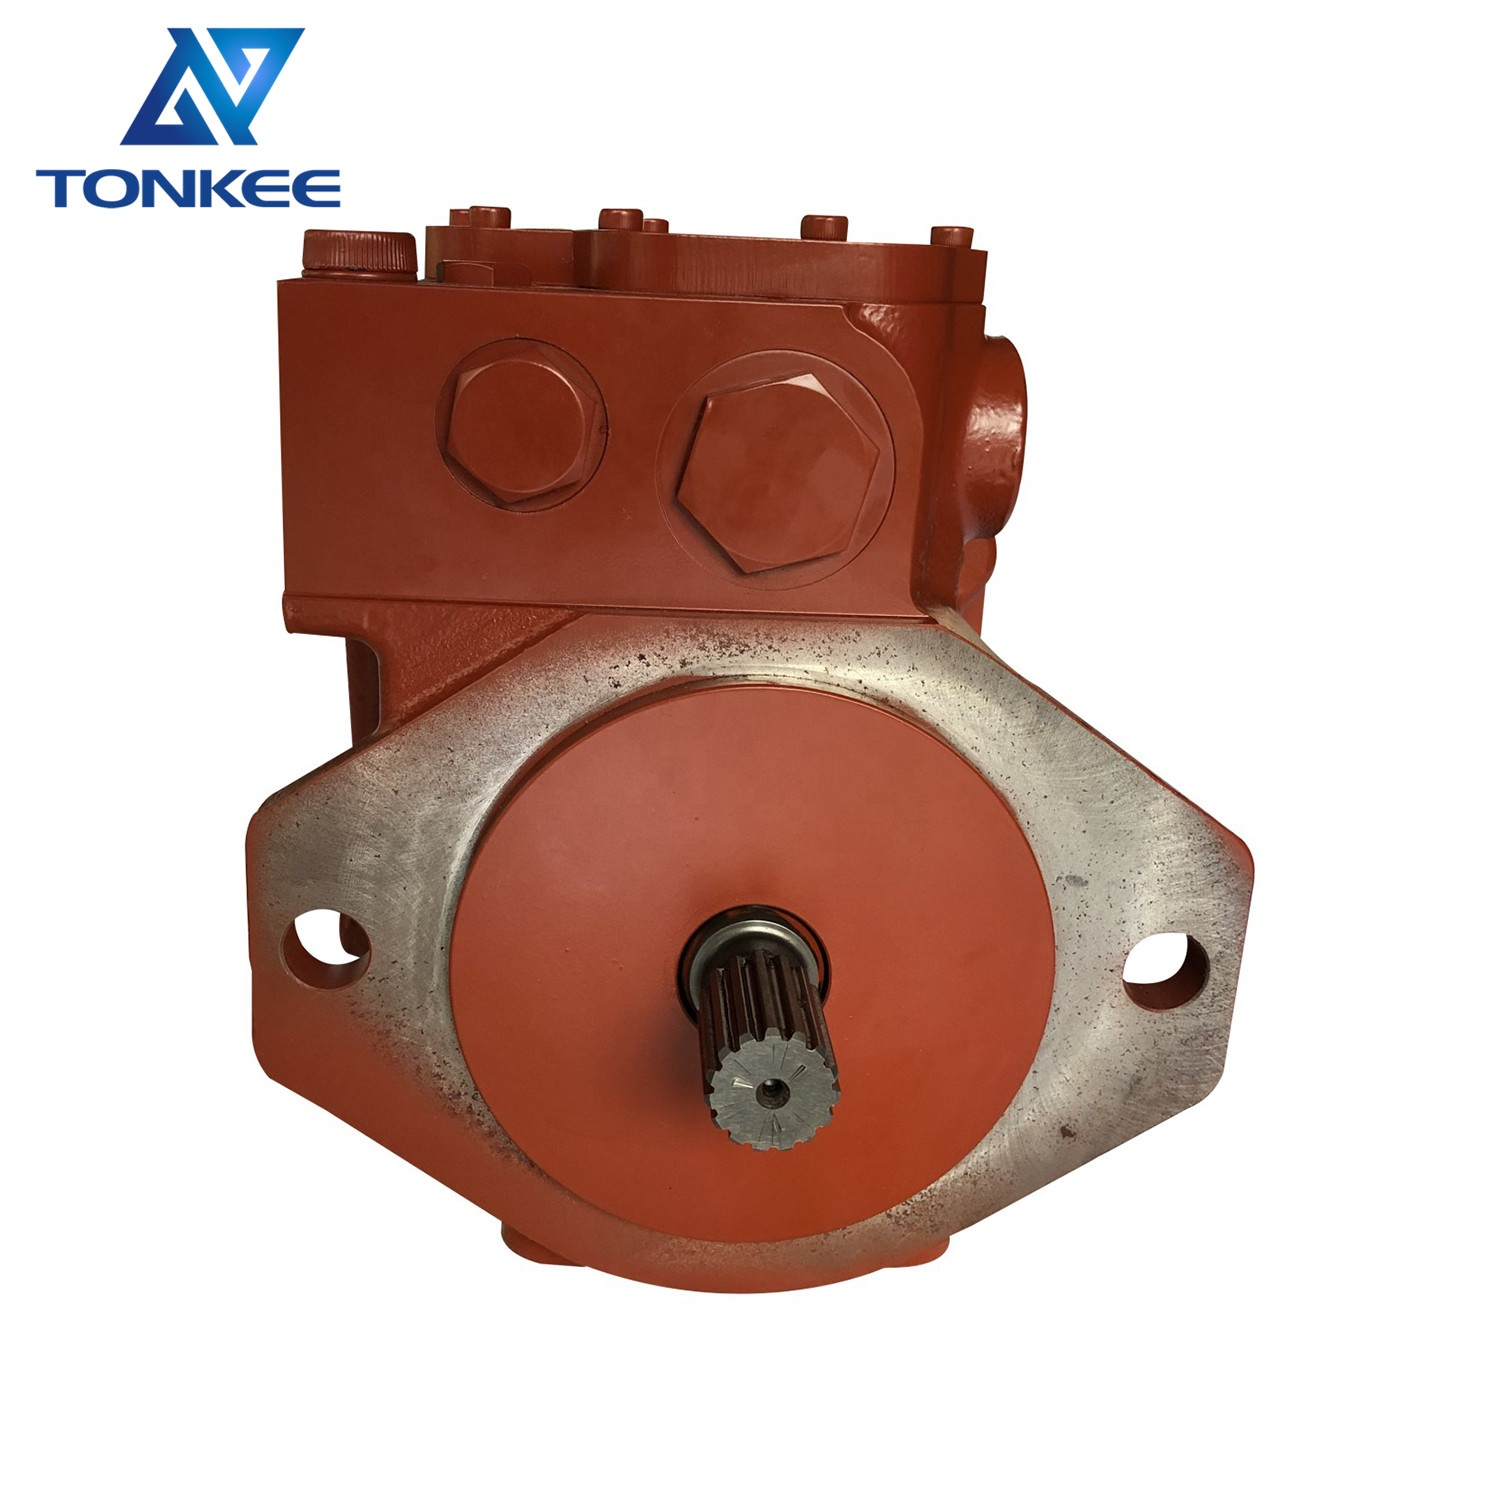 100% fit TB175 TB180 excavator main pump K3SP36C K3SP36C-13BR-9002 hydraulic piston pump suitable for TAKEUCHI (5).jpg